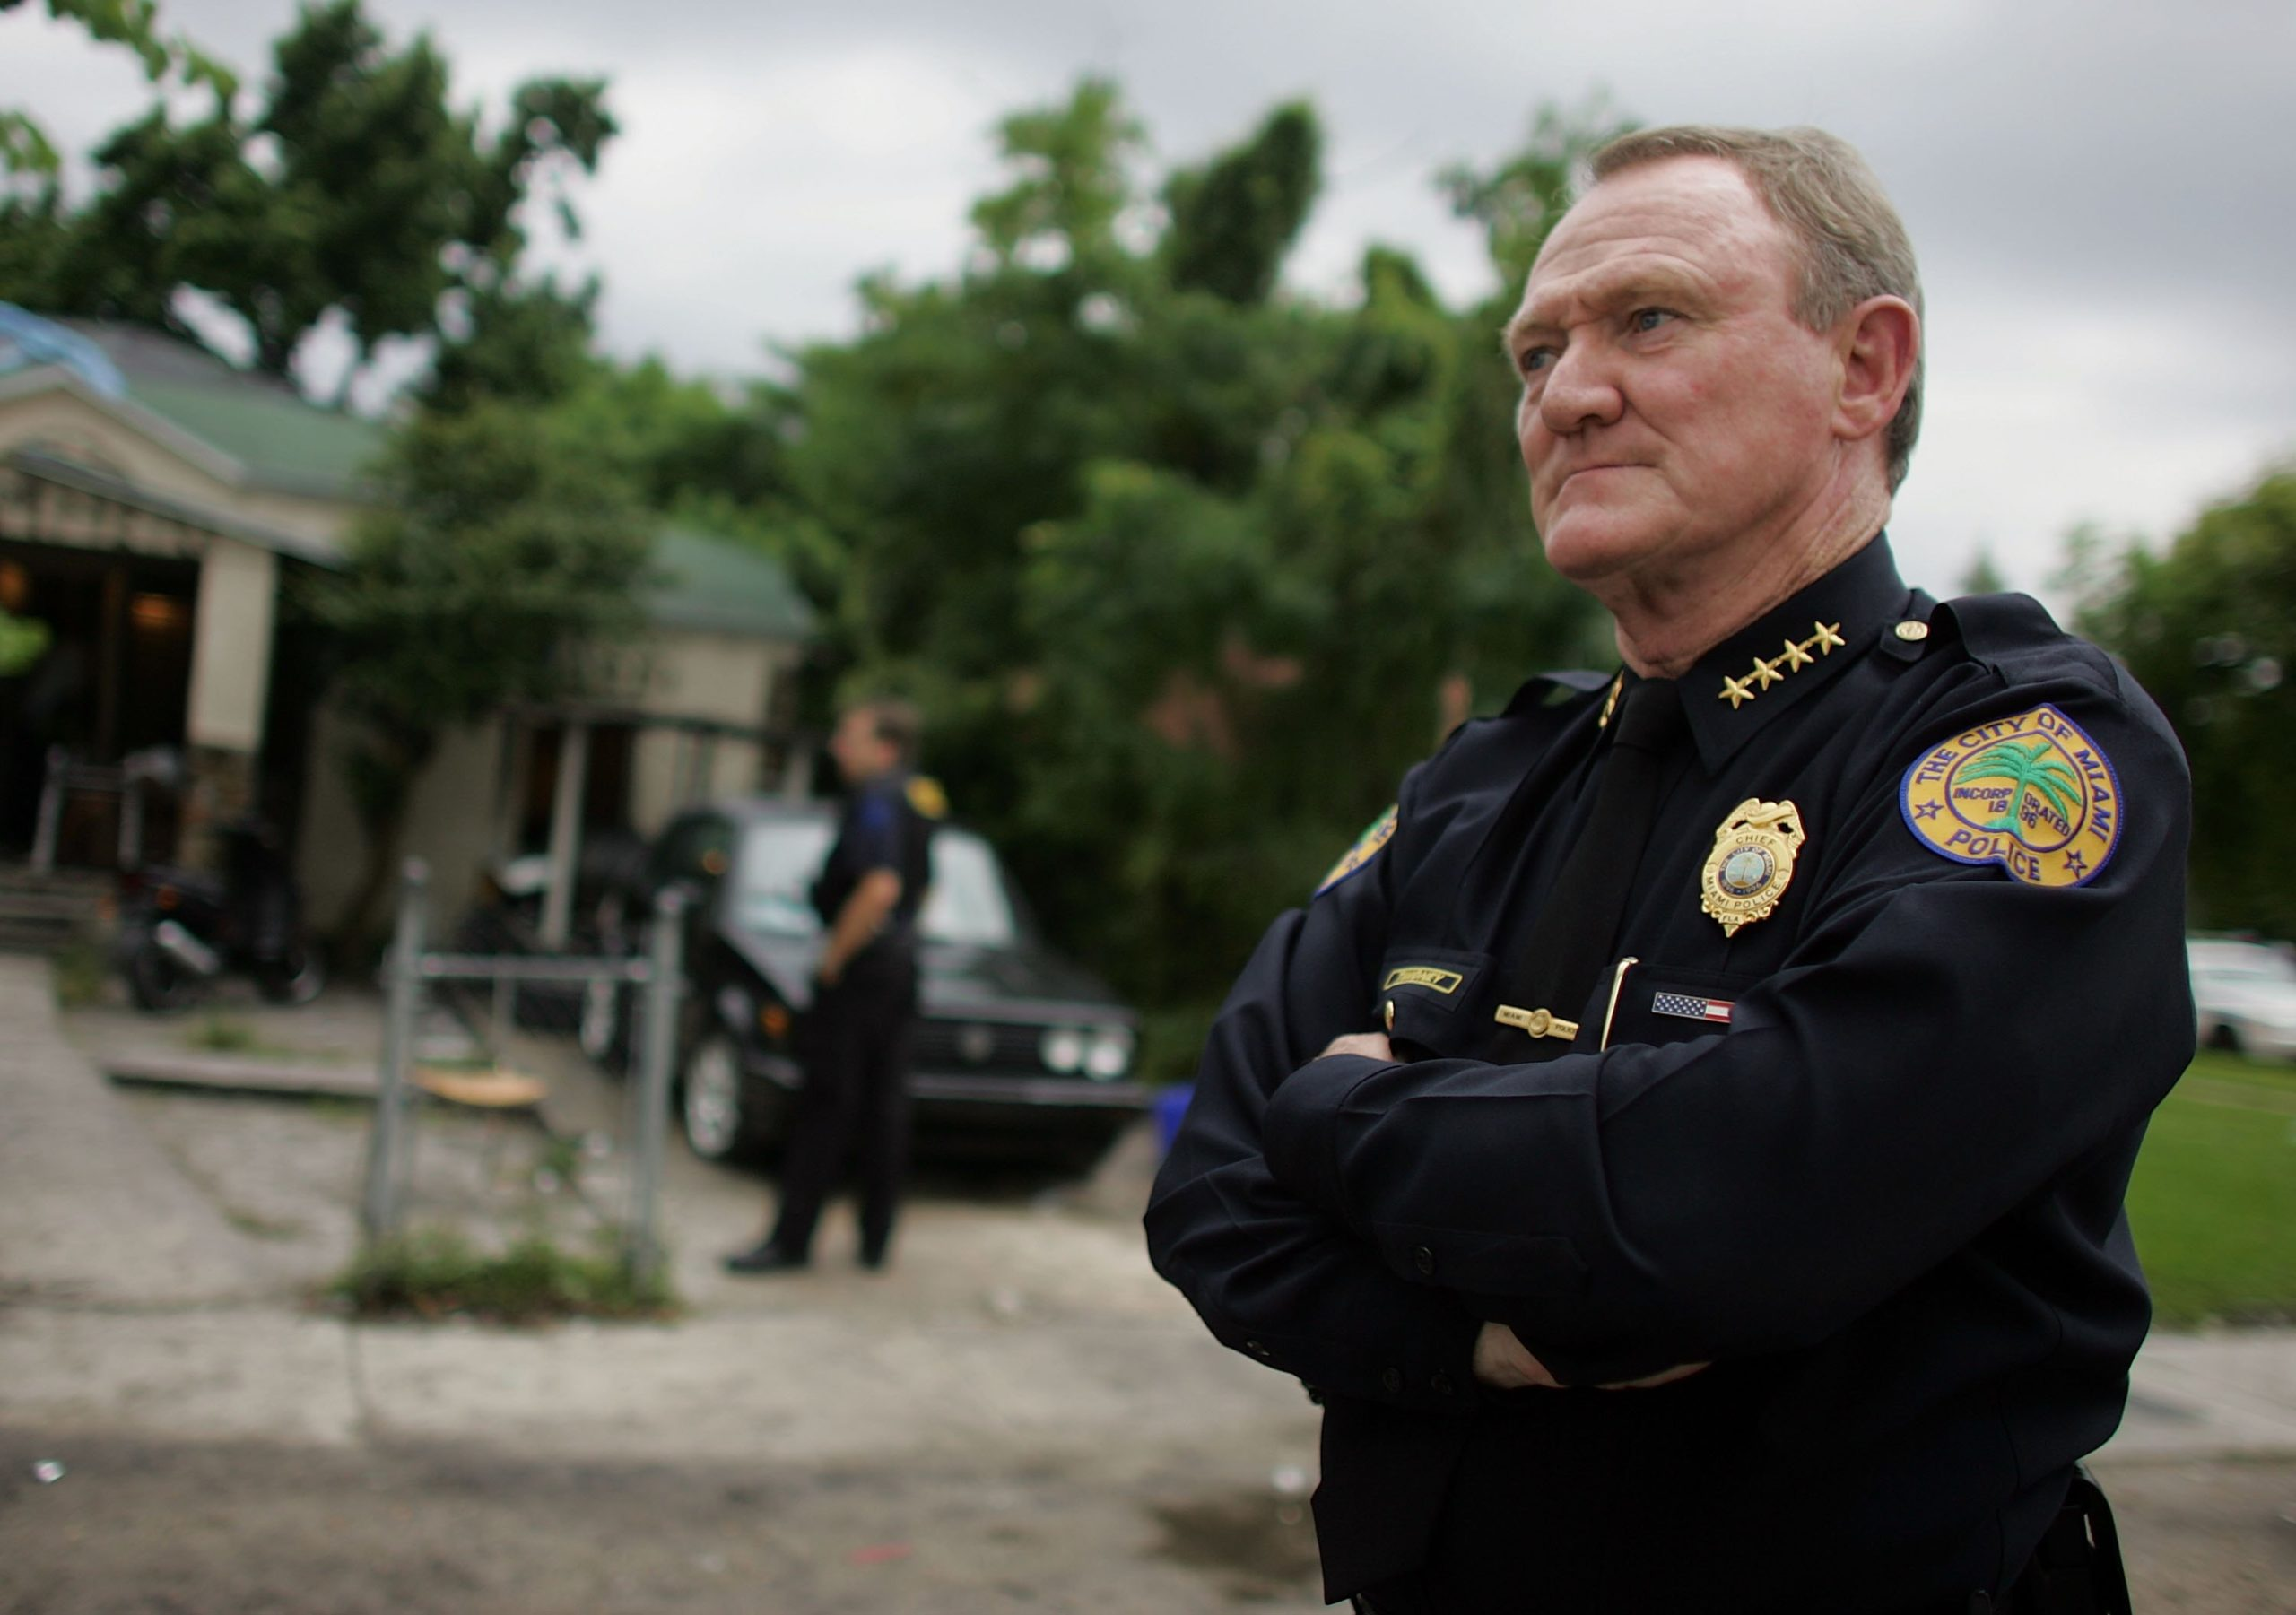 Miami Police Chief John Timoney stands in front of a home raided by police September 27, 2006 in Miami, Florida. The raid was part of an on going crack-down in a neighborhood affected by violence. (Photo by Joe Raedle/Getty Images)